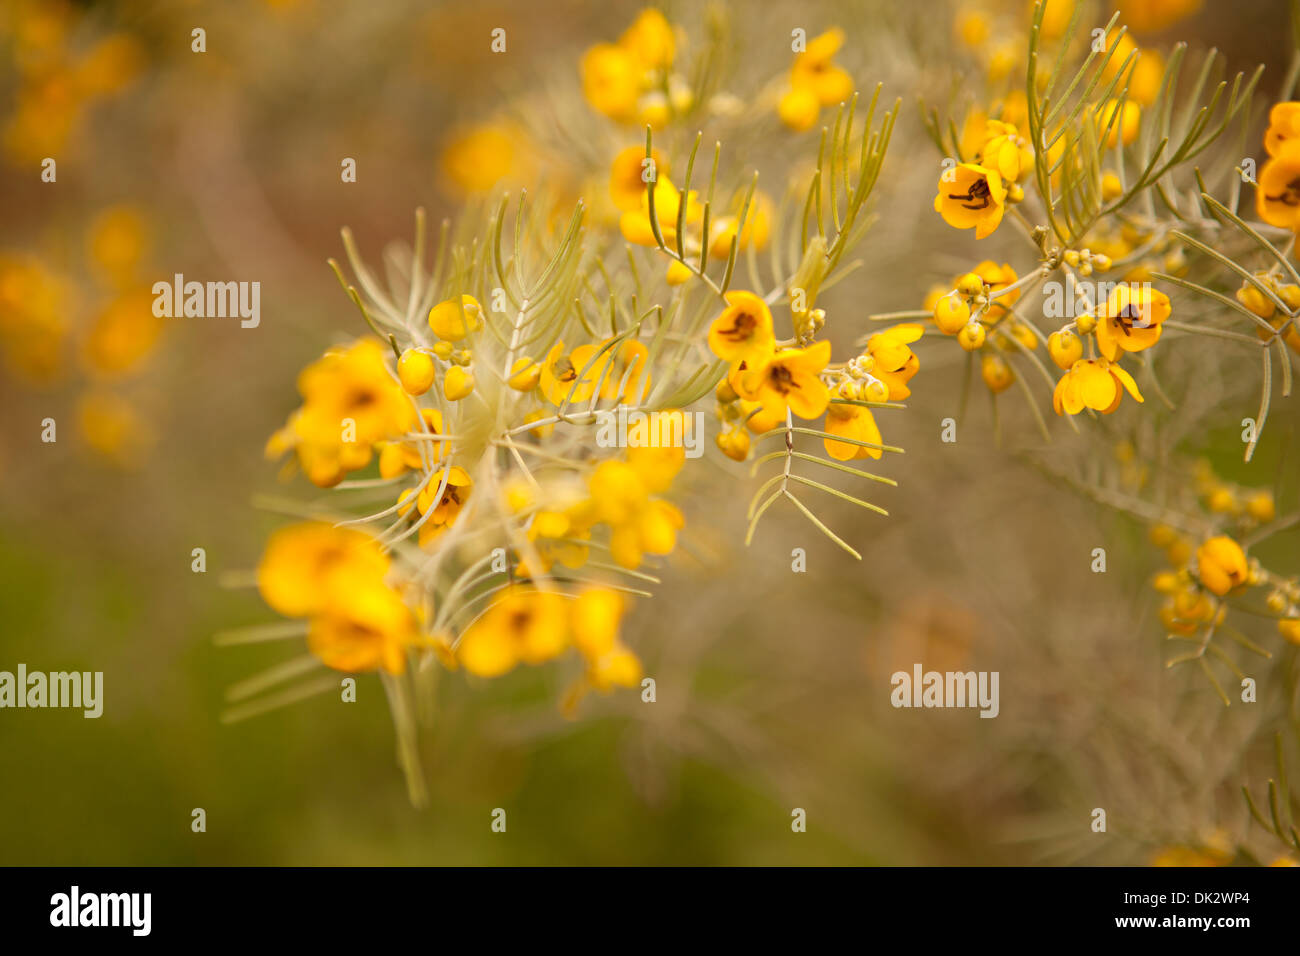 Close up of yellow wildflowers on branch - Stock Image